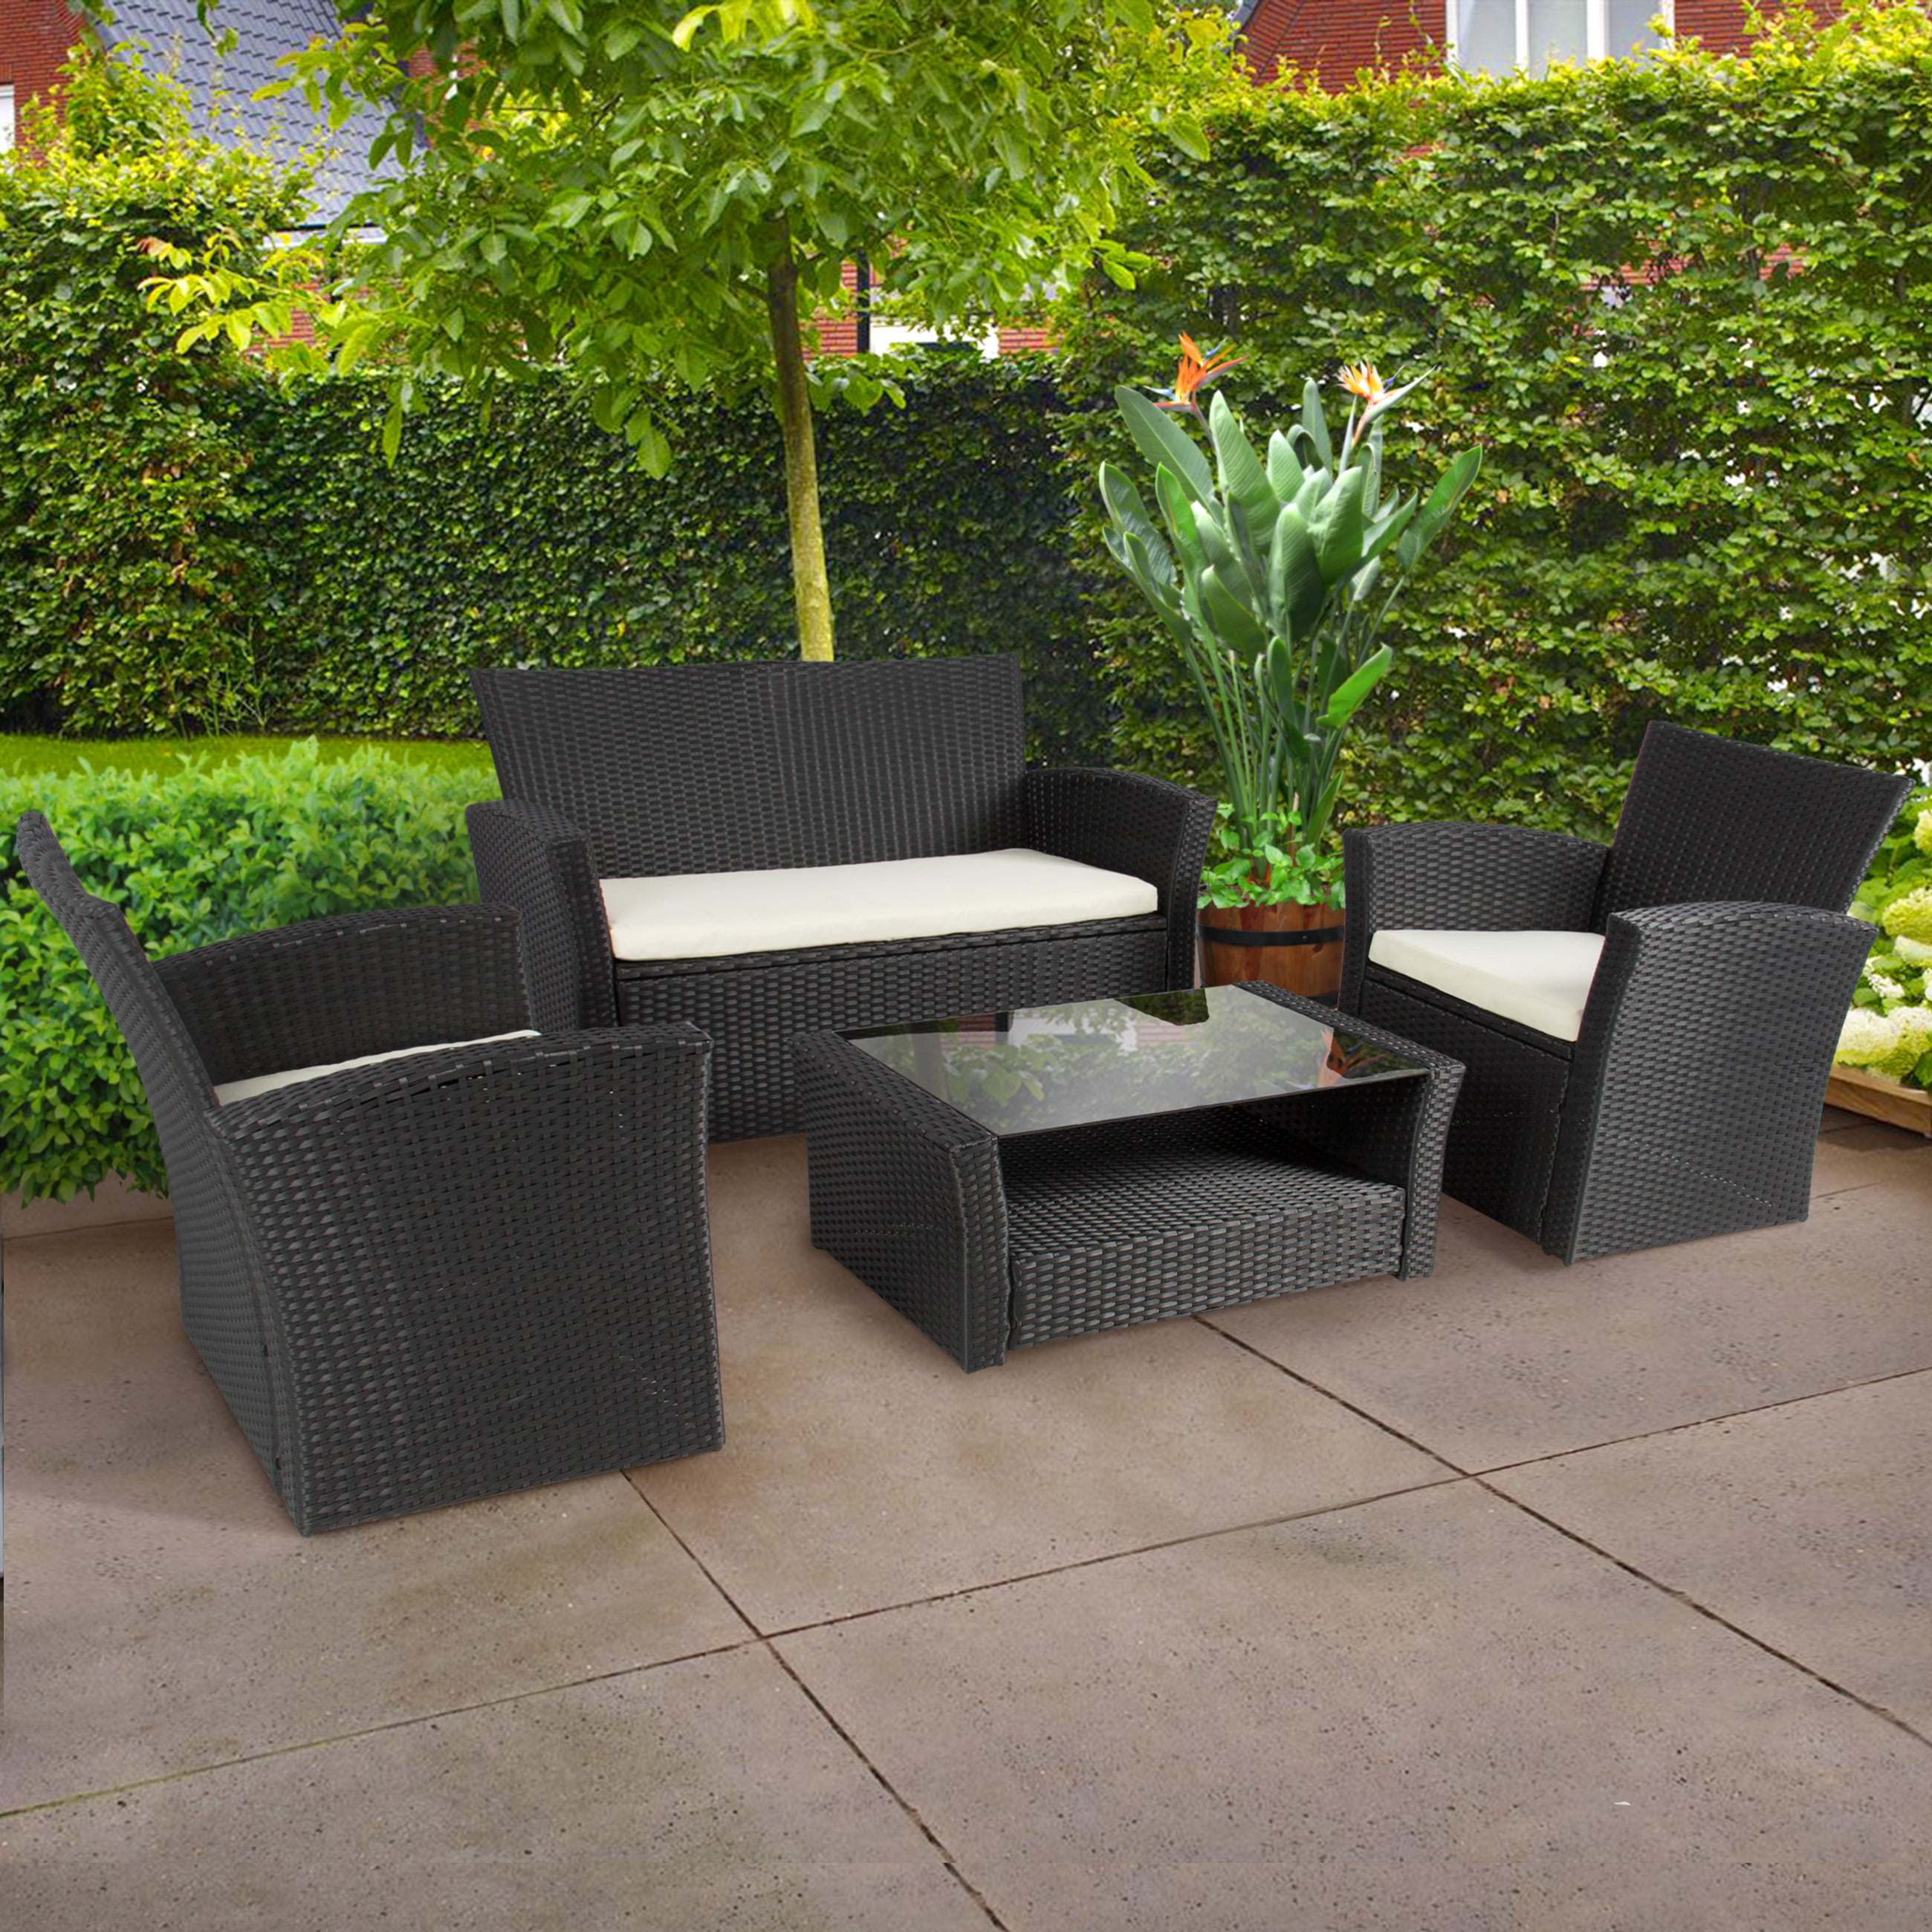 outside patio furniture 4pc outdoor patio garden furniture wicker rattan sofa set 31083